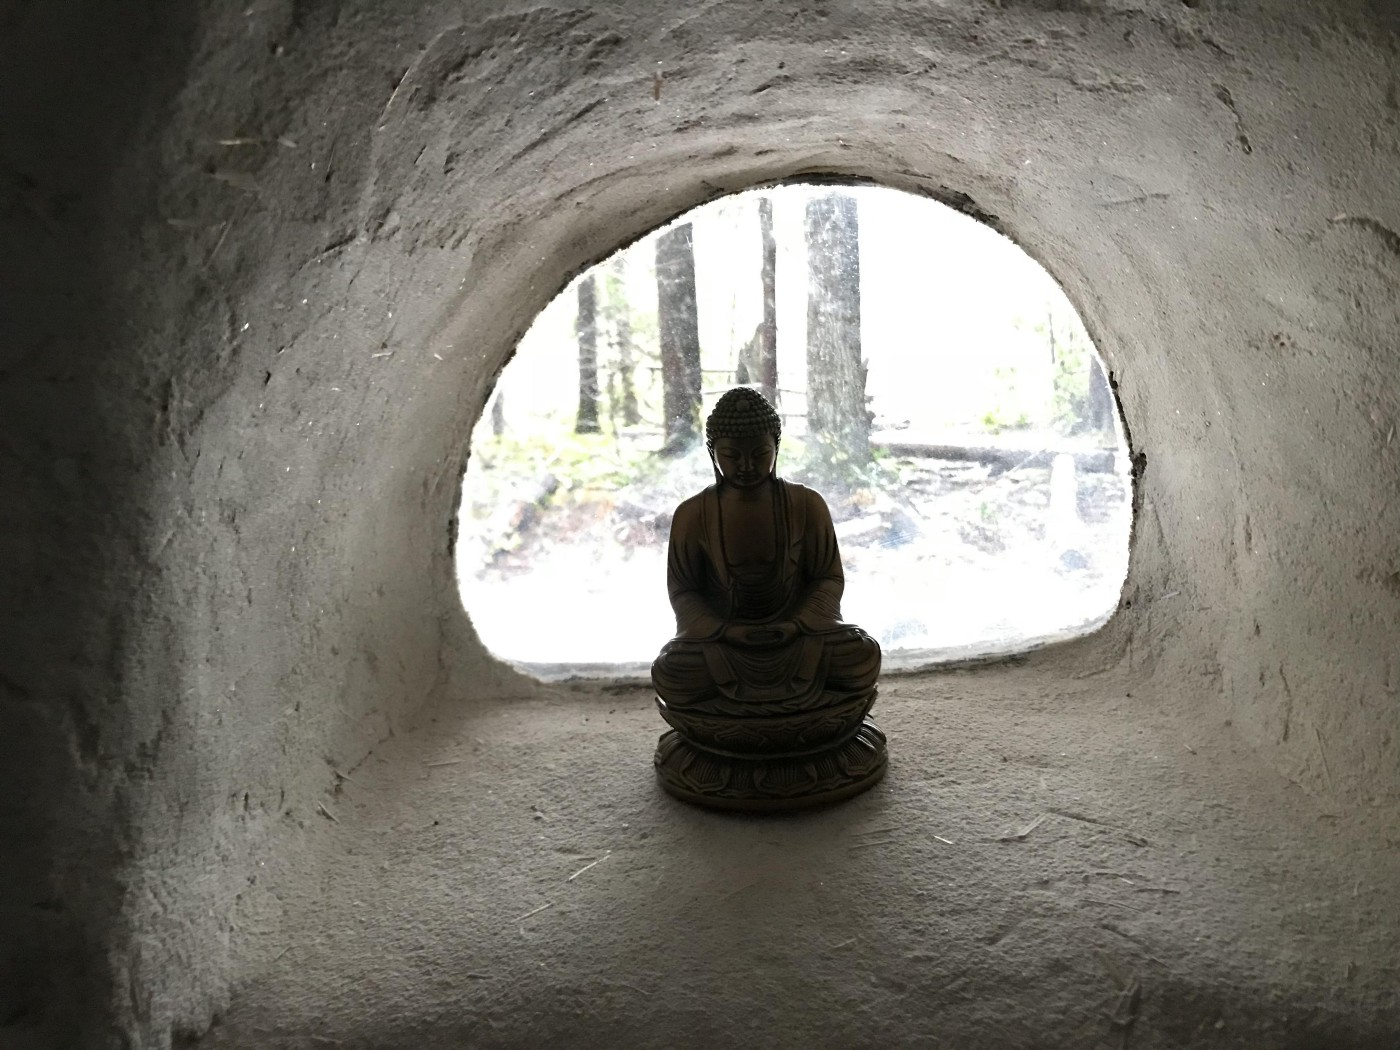 a moment of presence—meditating at the entrance to a cave